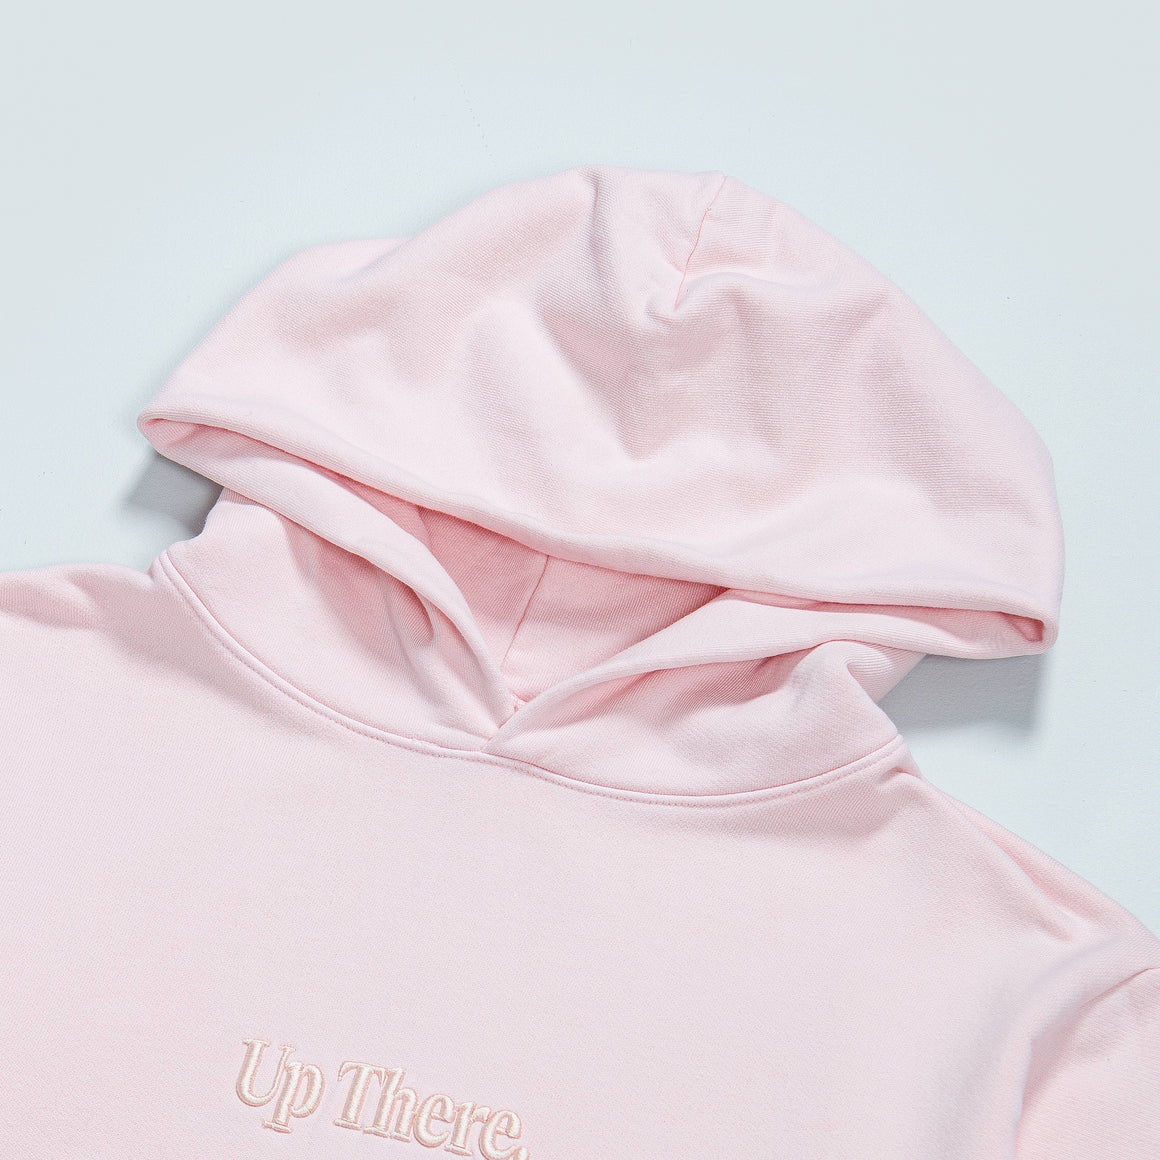 Up There - Heavyweight Pullover Hoodie - Pink - Up There